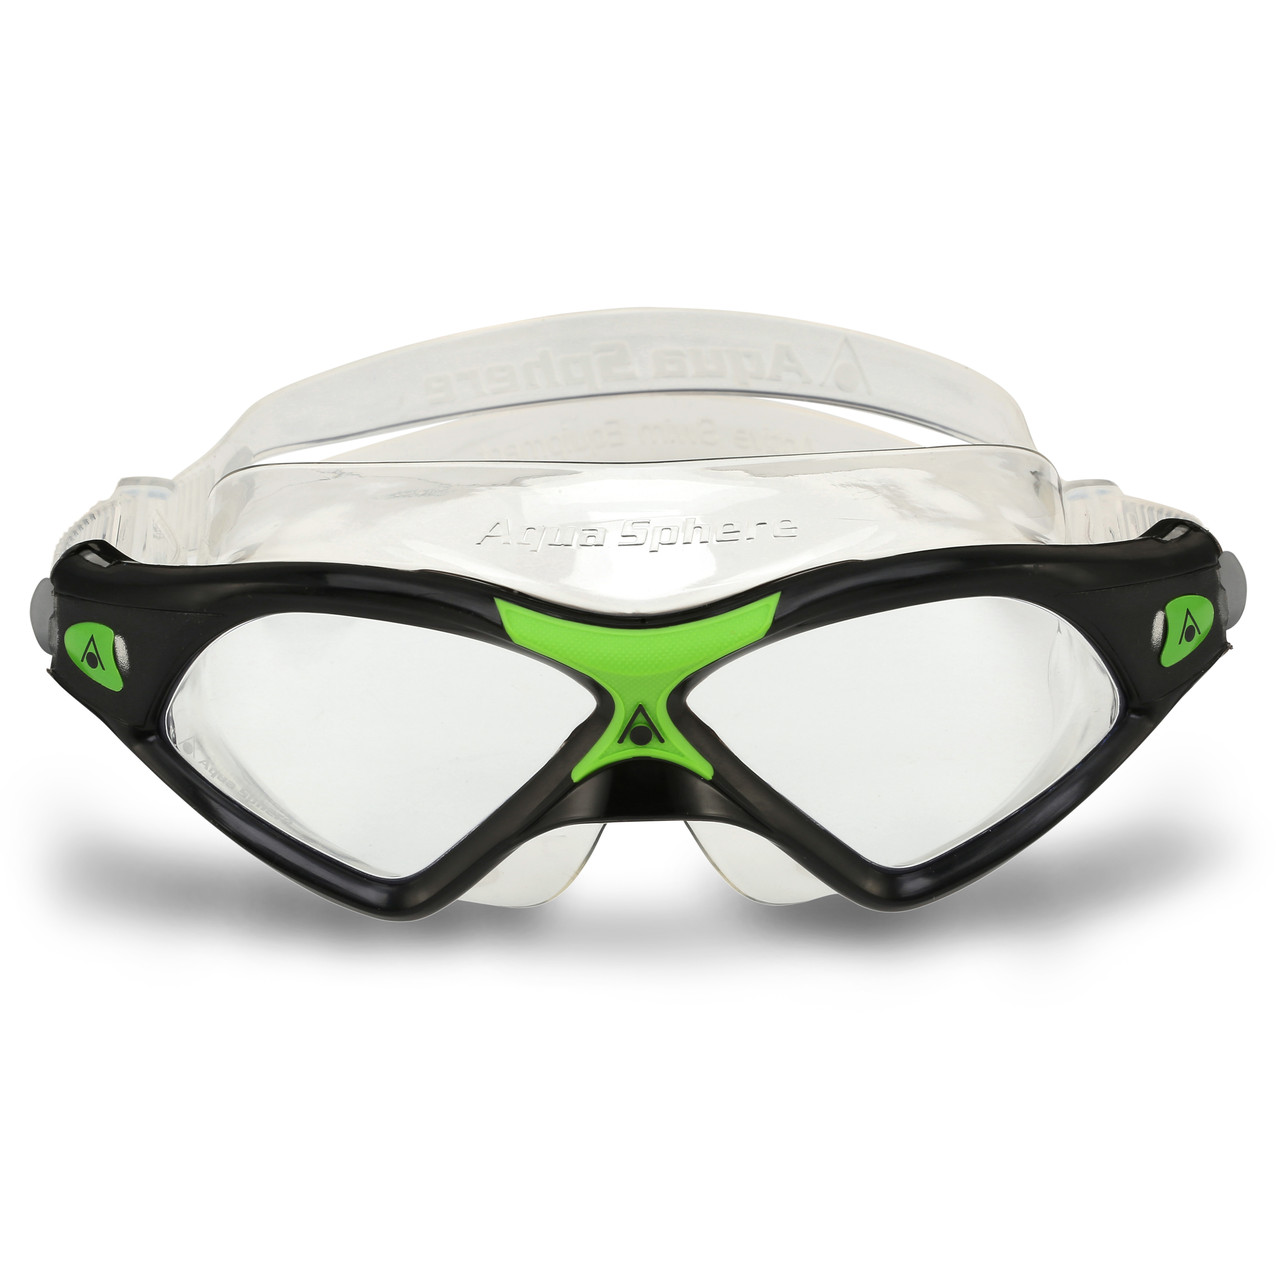 Aqua Sphere Seal XP 2 Swim Mask with Clear Lens - 2019 price